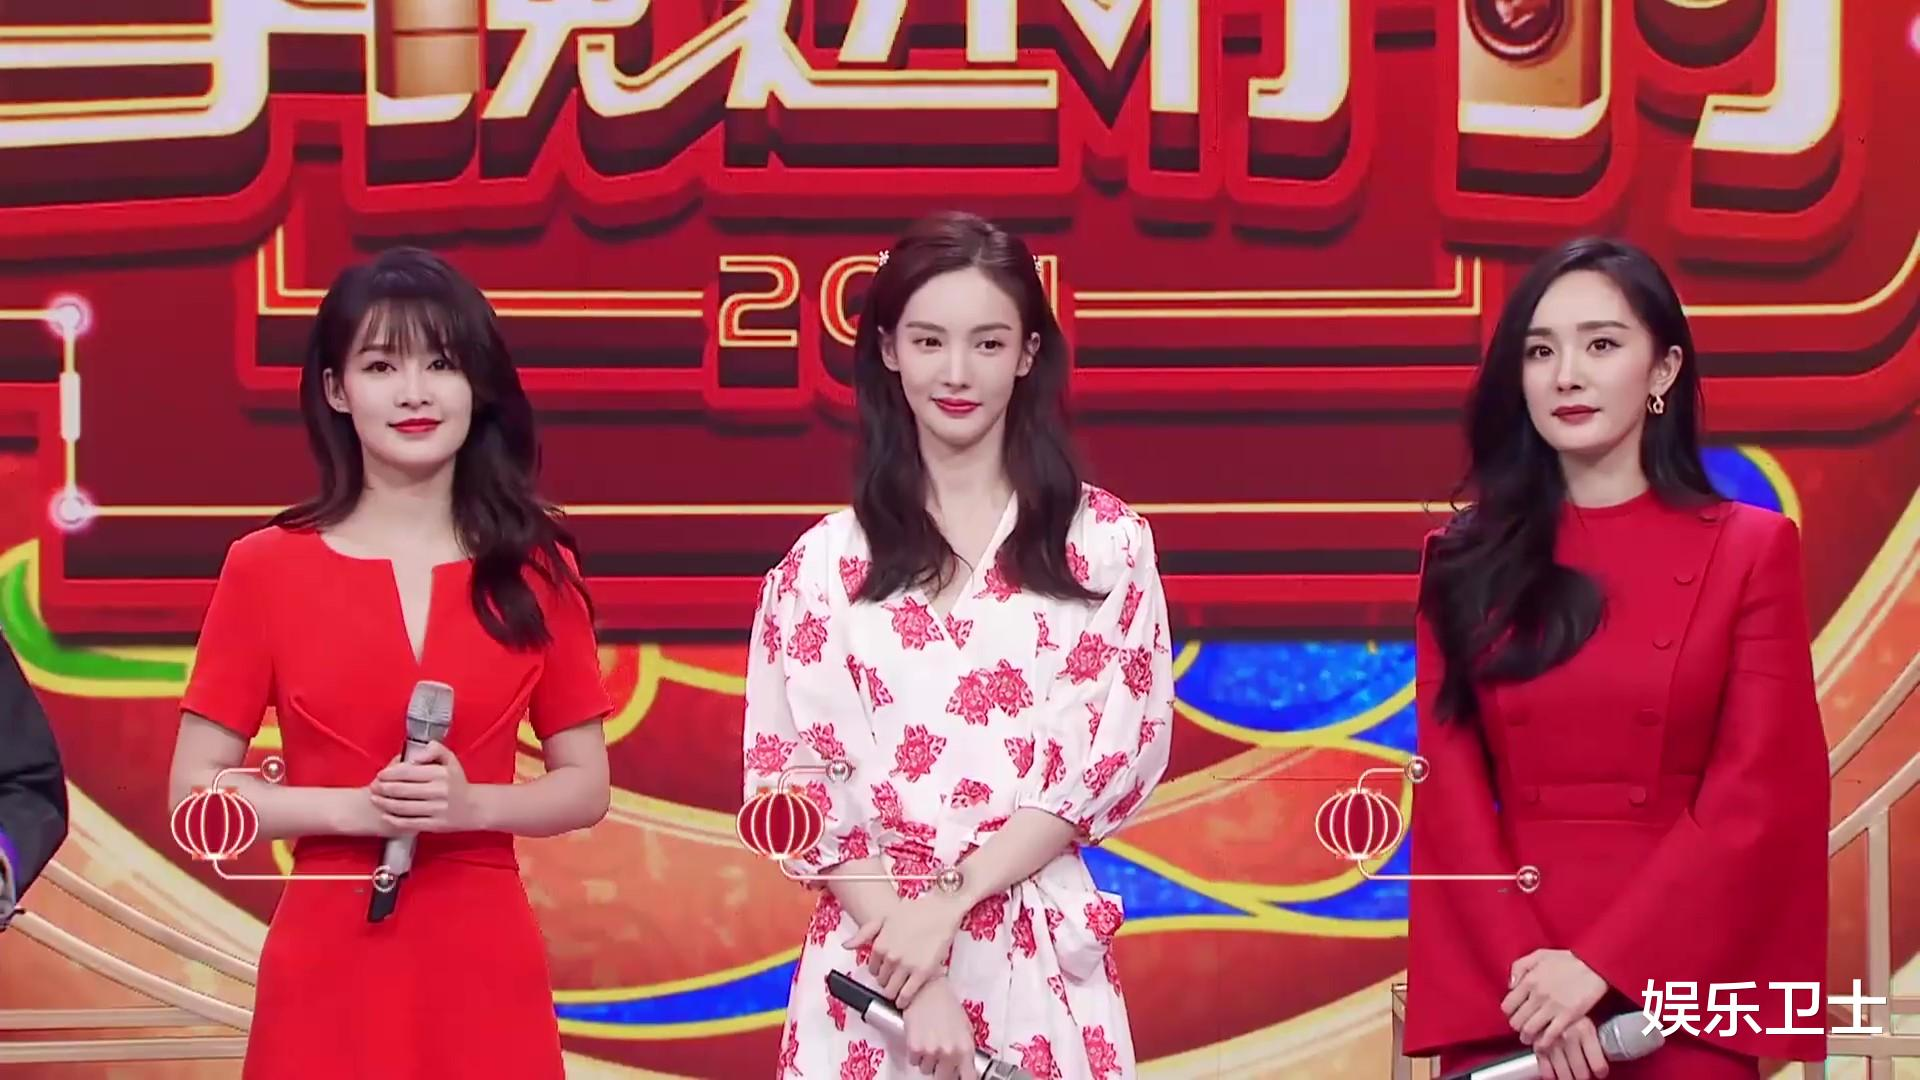 During the Spring Festival Gala, Yang Mi, Jinchen, and Li Qin were in the same frame.